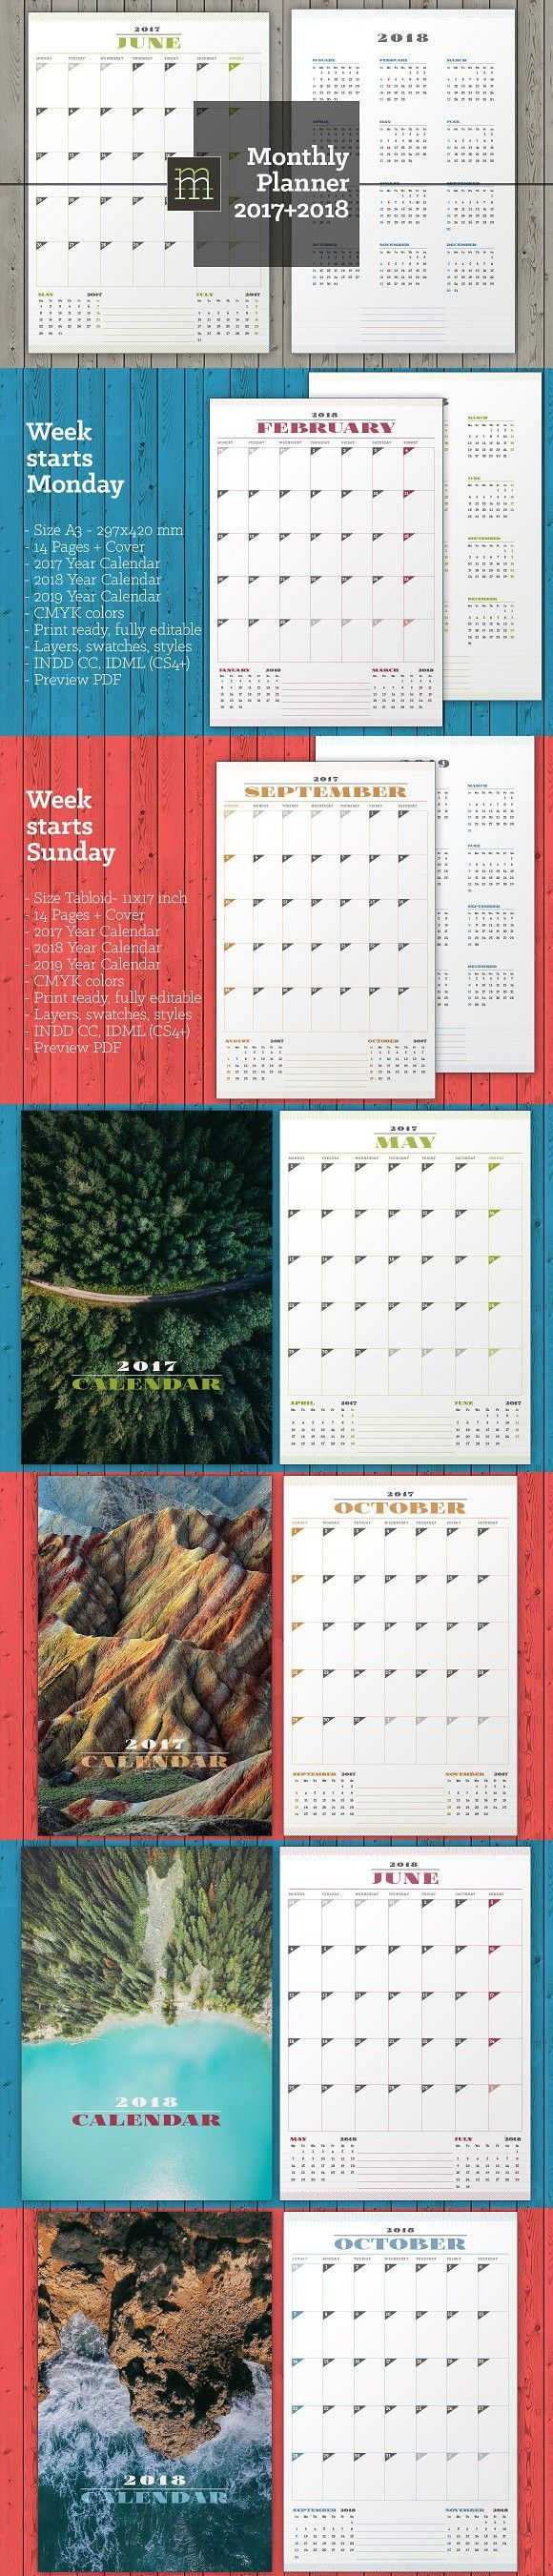 Monthly Planner 2017-2018 (MP11). Stationery Templates